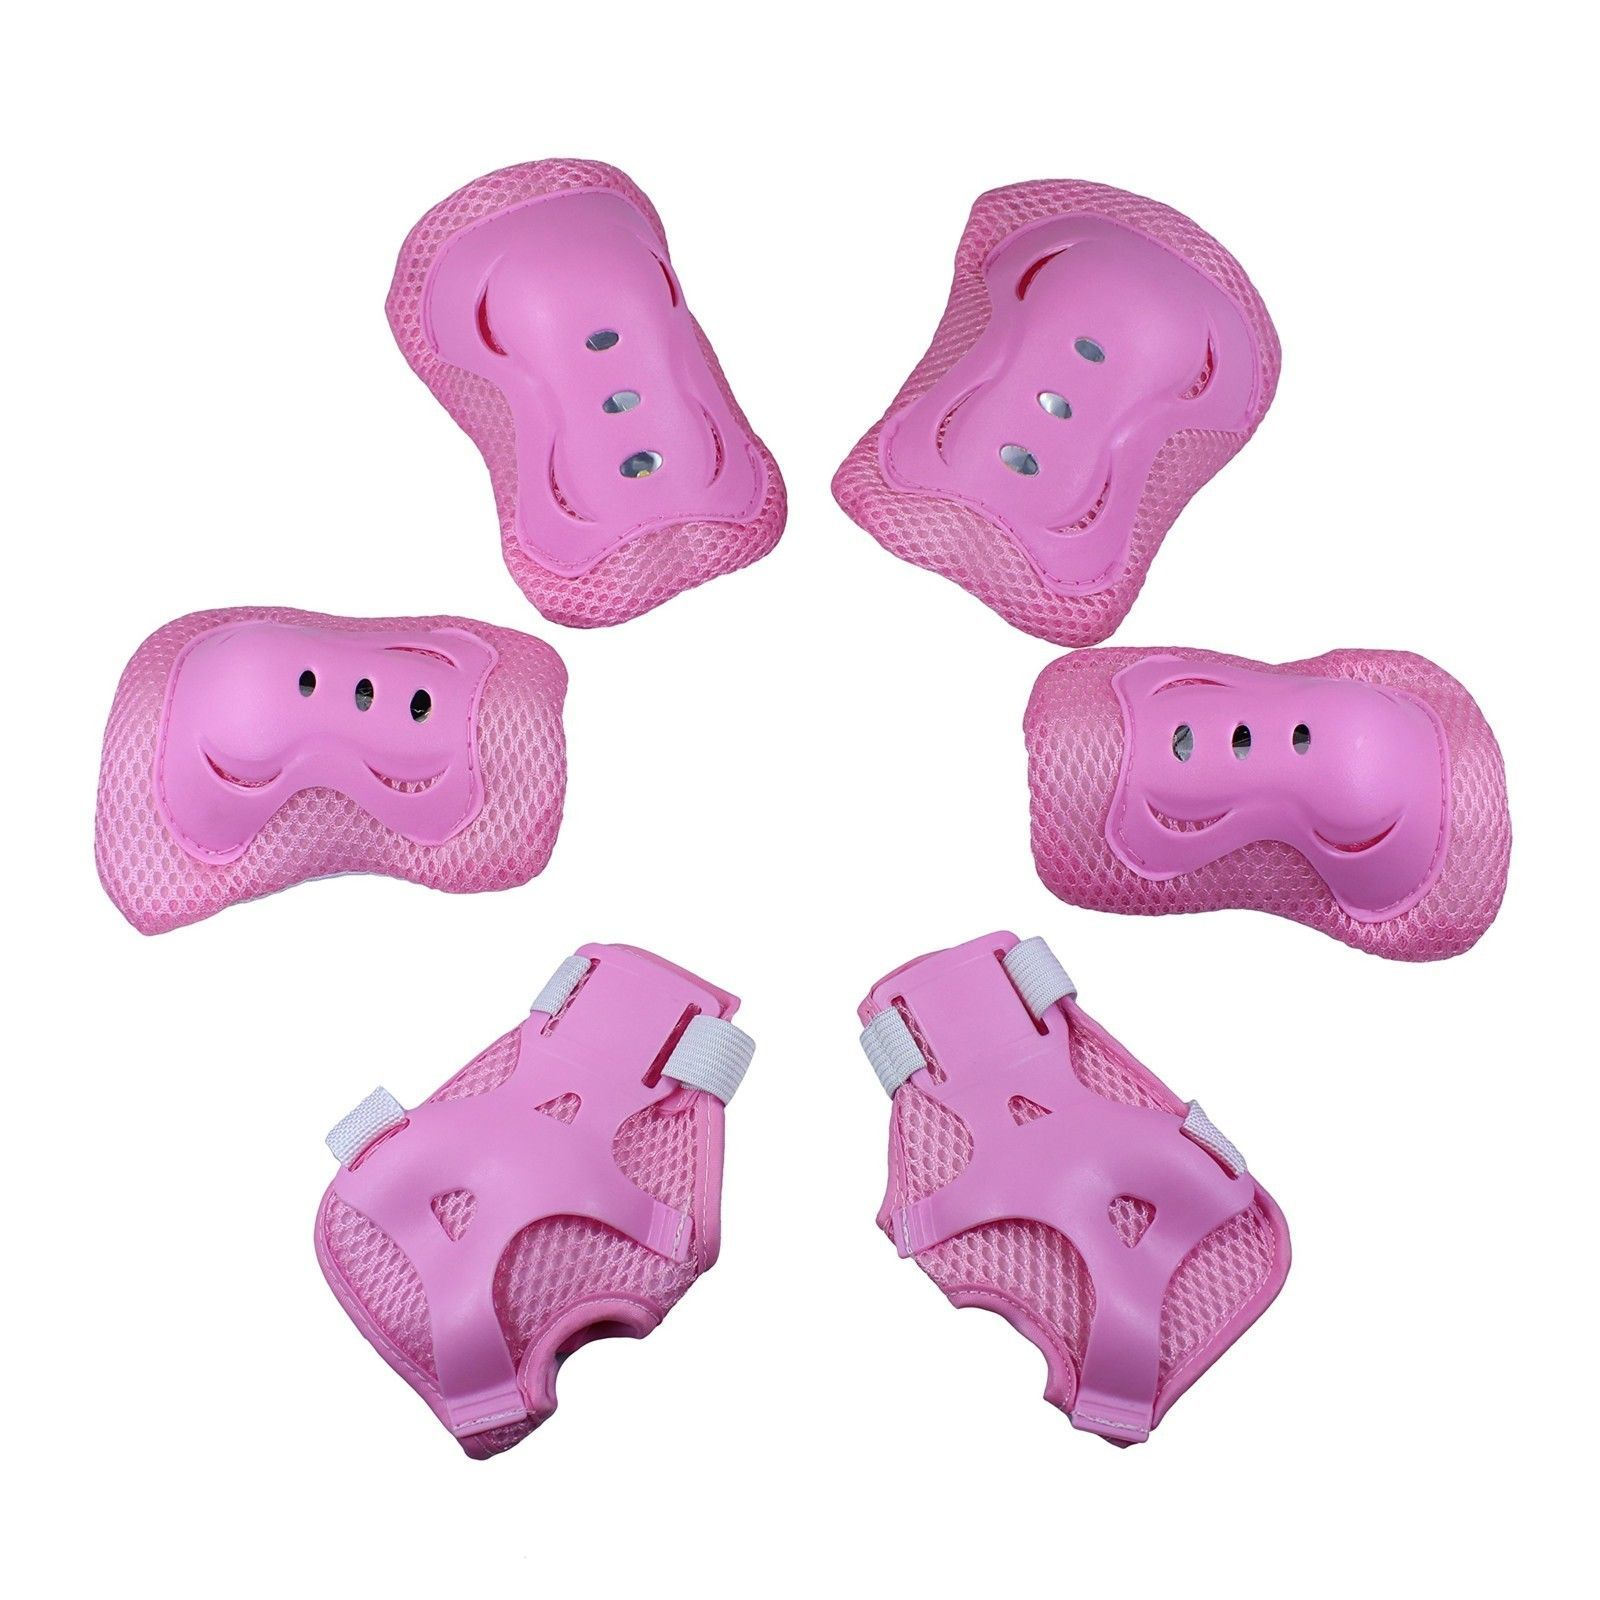 Kid's Adjustable Sports Safety Protective Gear Set Children Knee Pads Pink